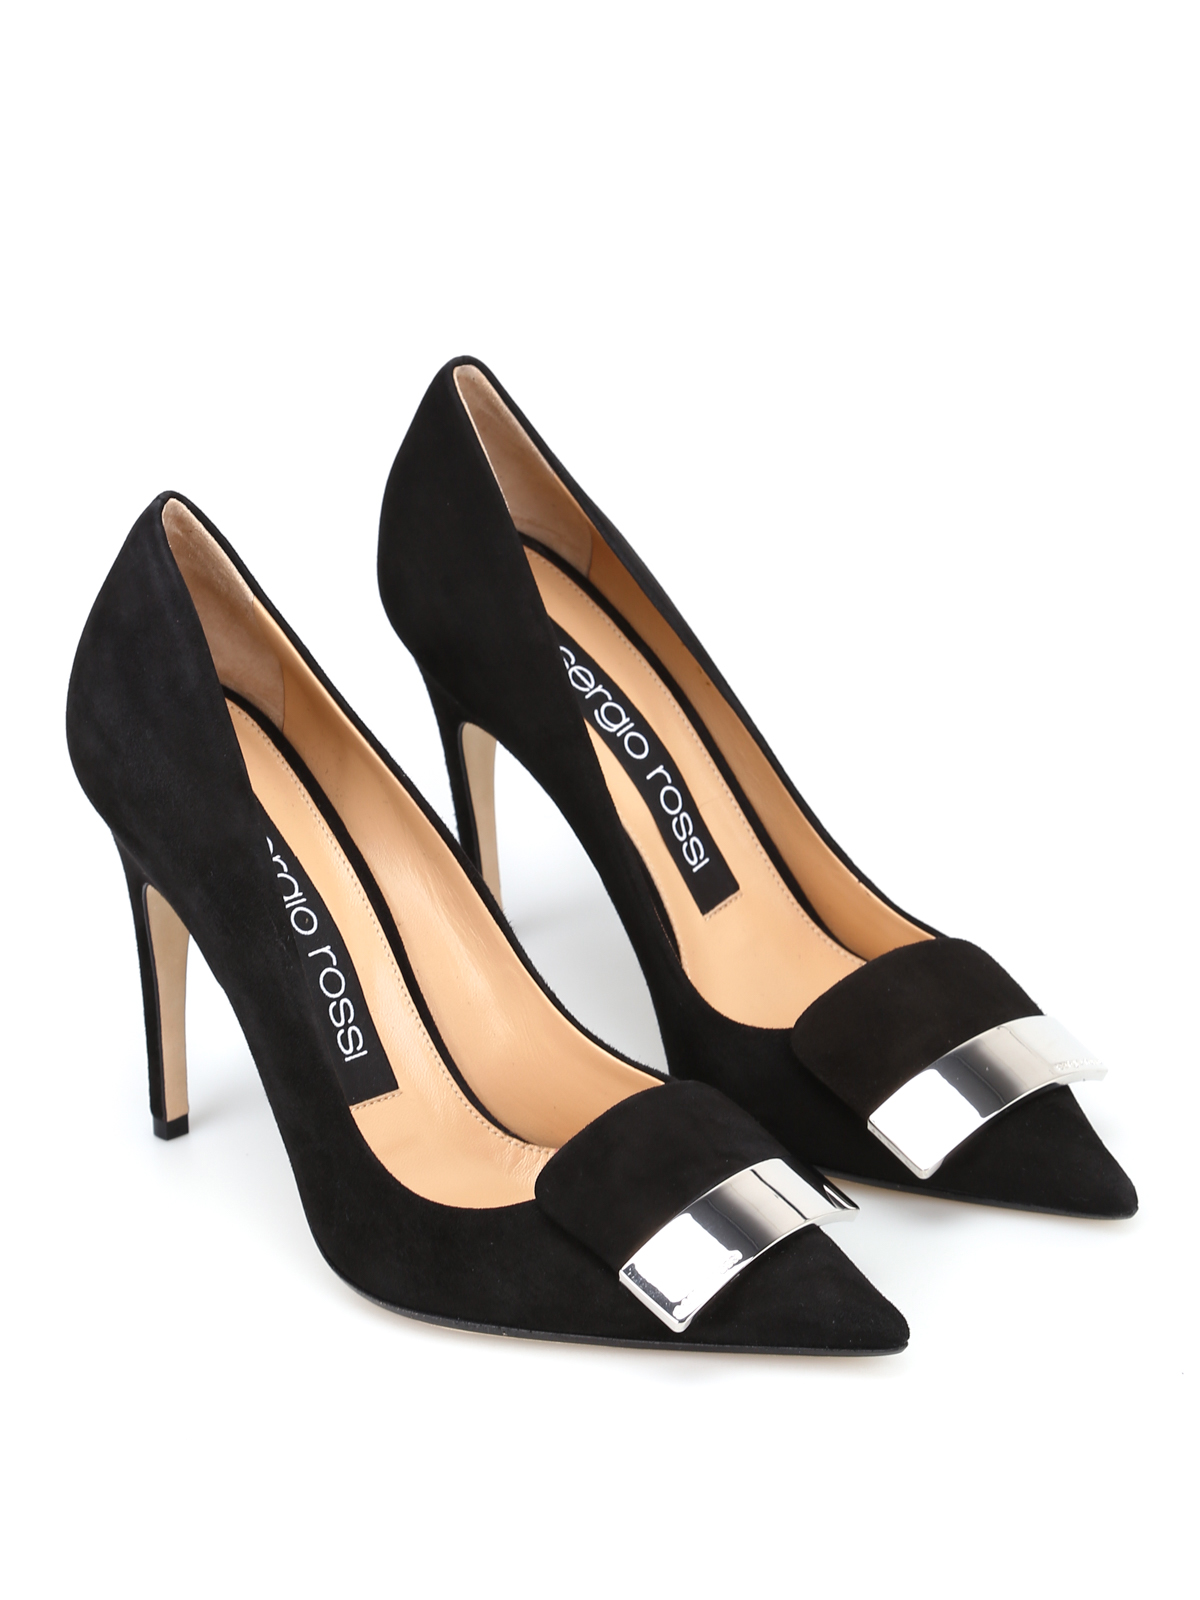 Sergio Rossi Sr1 Pumps Browse Cheap Sale View Genuine For Sale Brand New Unisex From China pCtCV